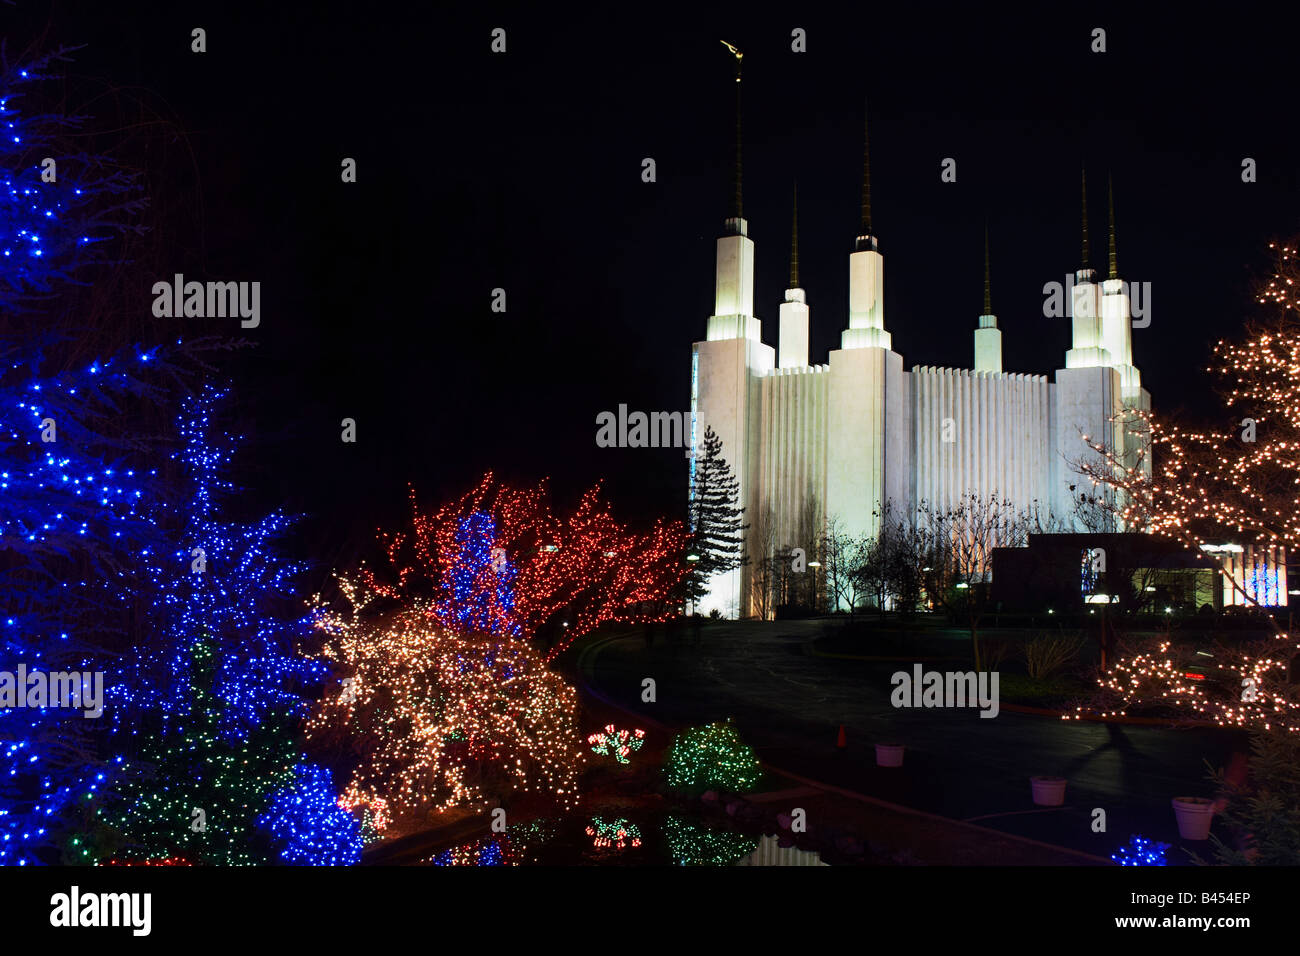 stock photo the mormon temple in kensington maryland surrounded by christmas lights during the festival of lights - Christmas Lights Maryland